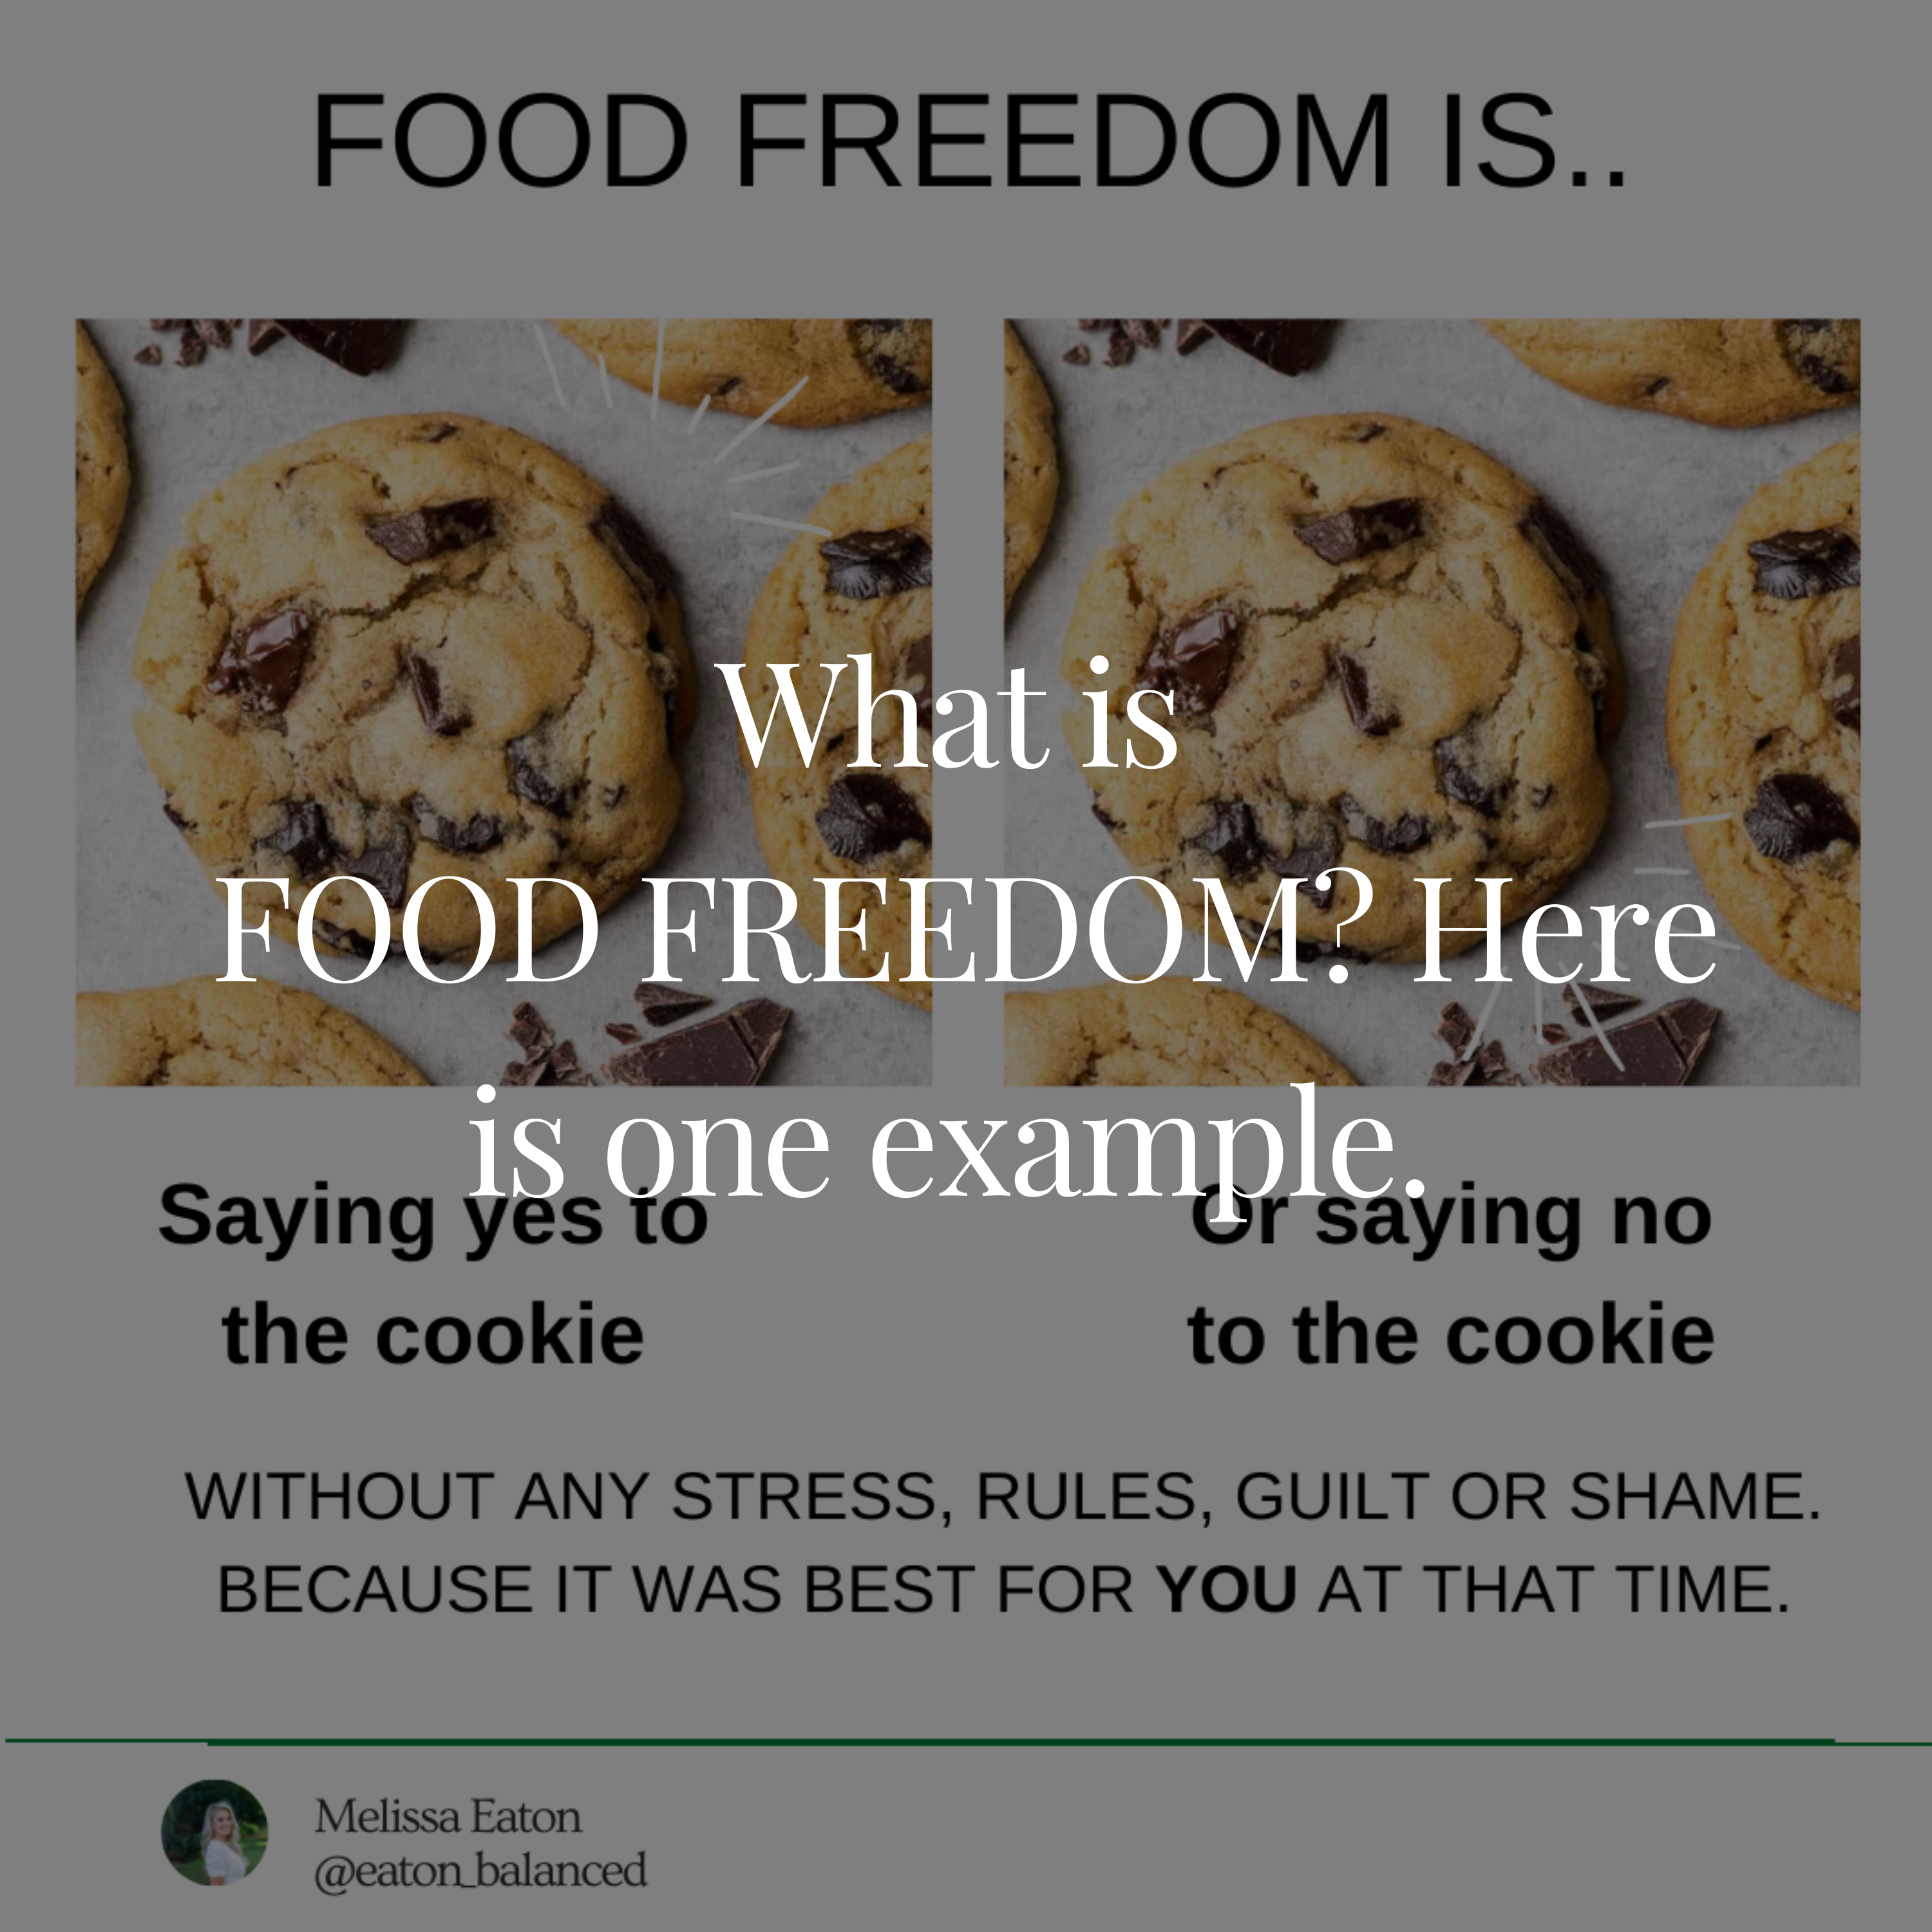 What is food freedom? Here is one example.